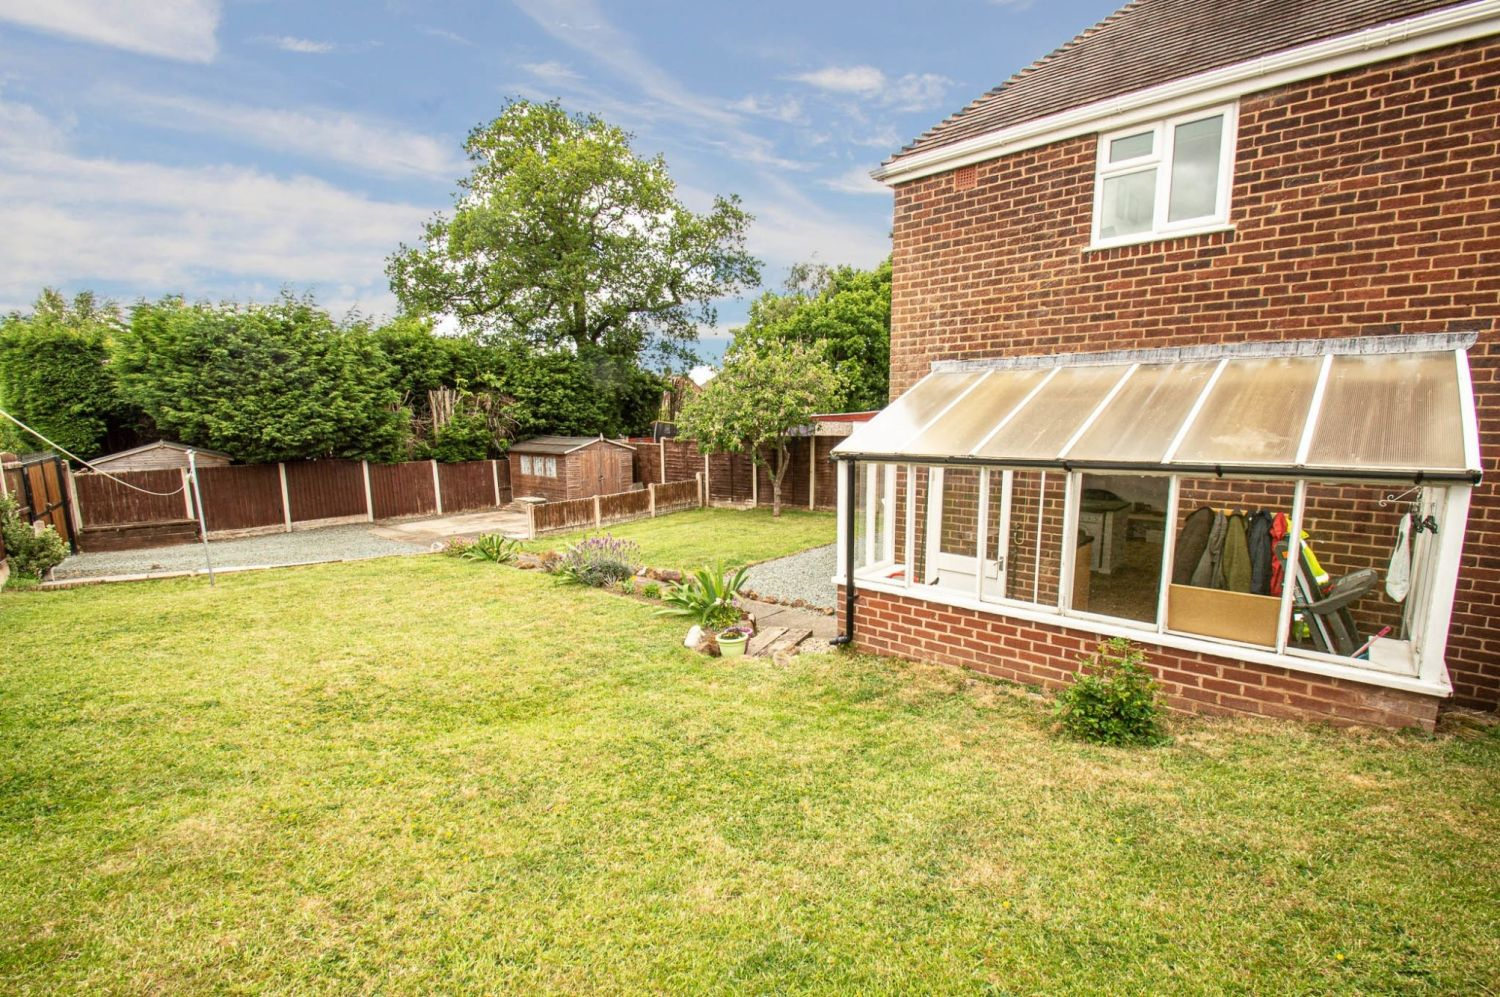 3 bed semi-detached for sale in Gauden Road, Wollescote 13